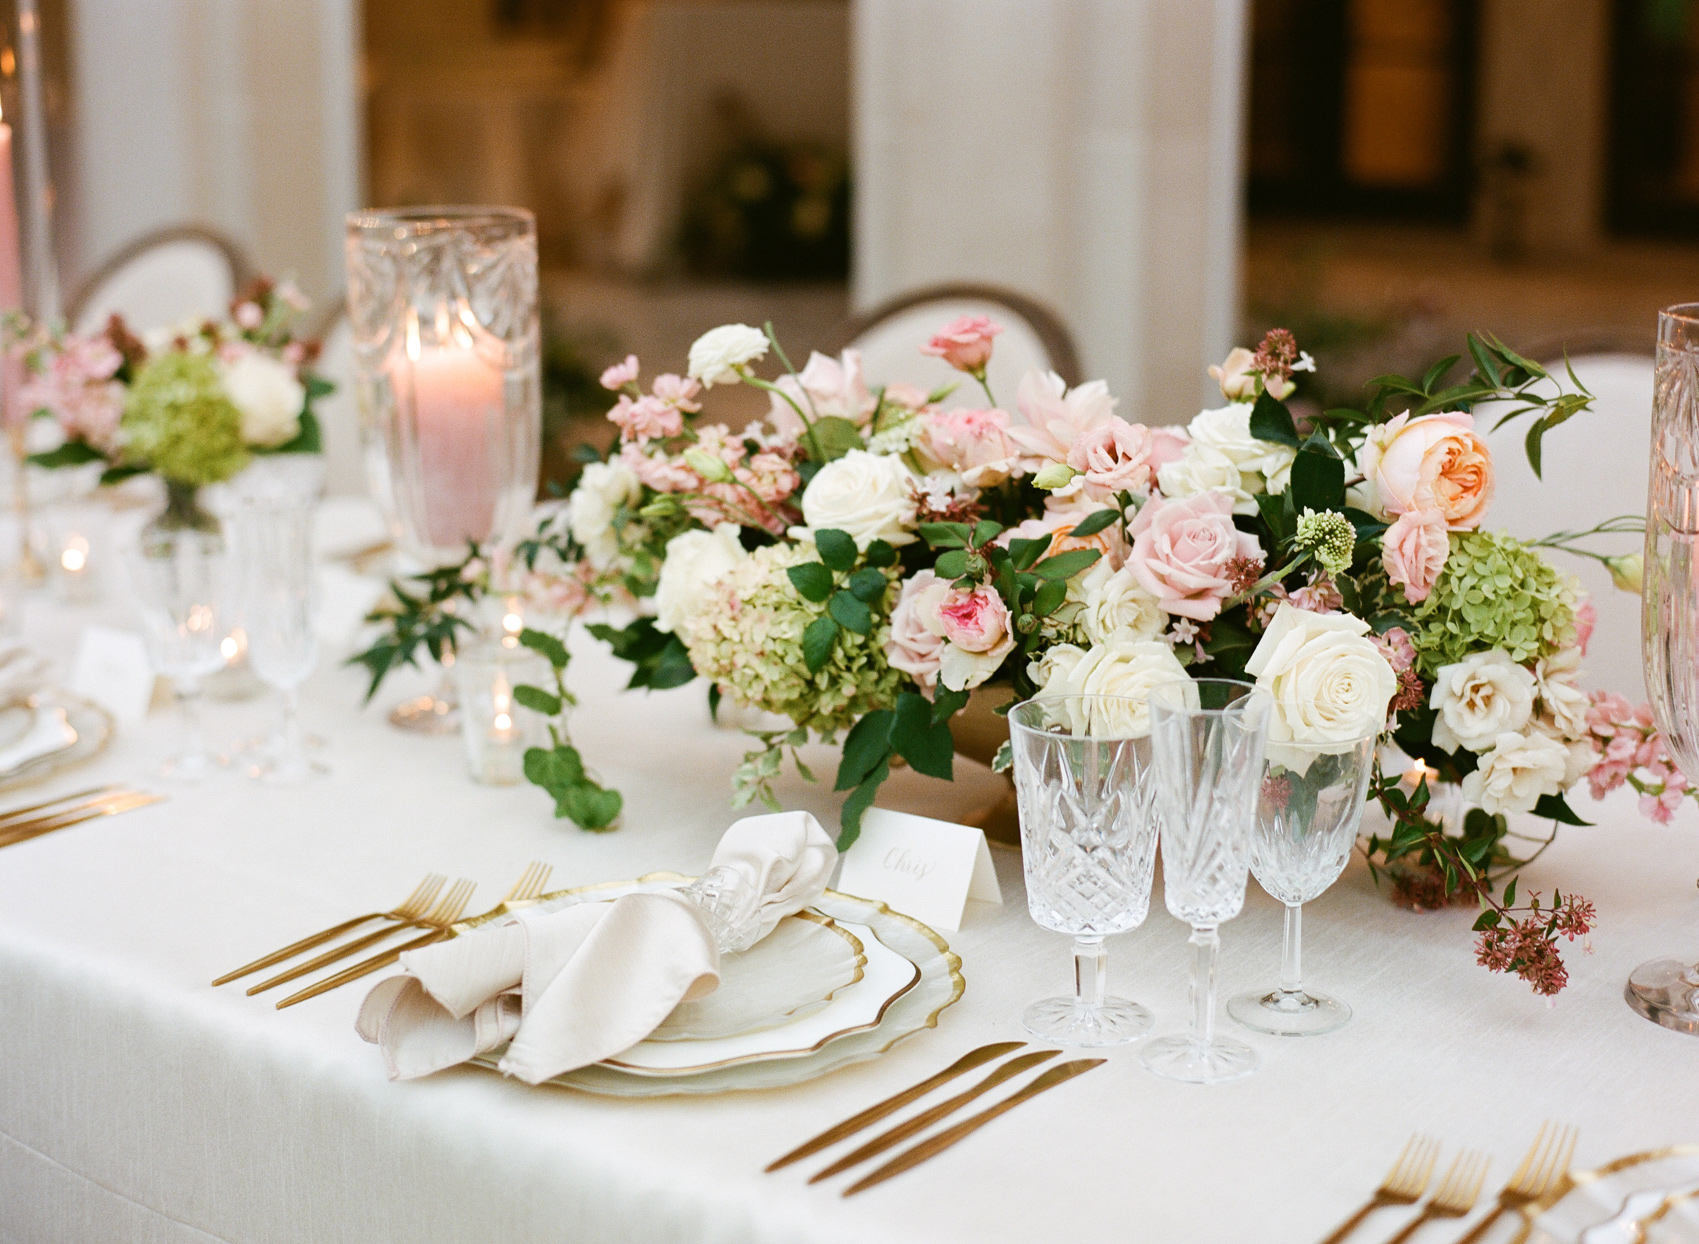 table setting with pink floral arrangements and gold accents